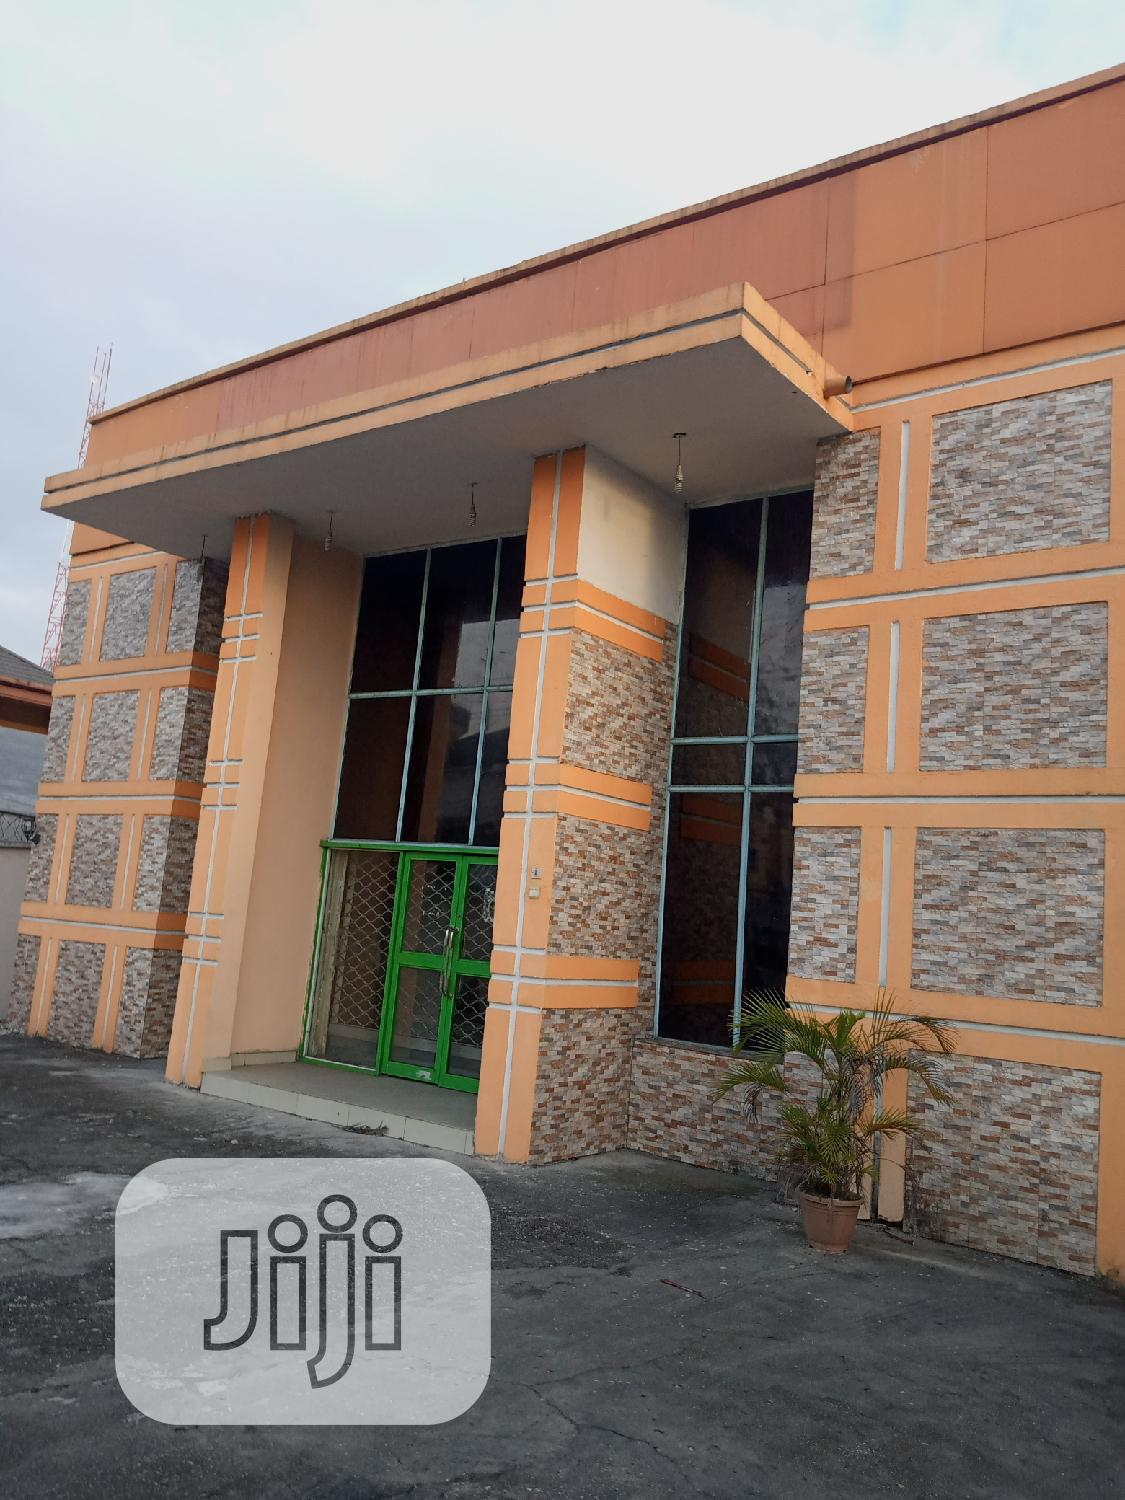 Archive: Commercial Property For Lease. Open Space For Fastfood